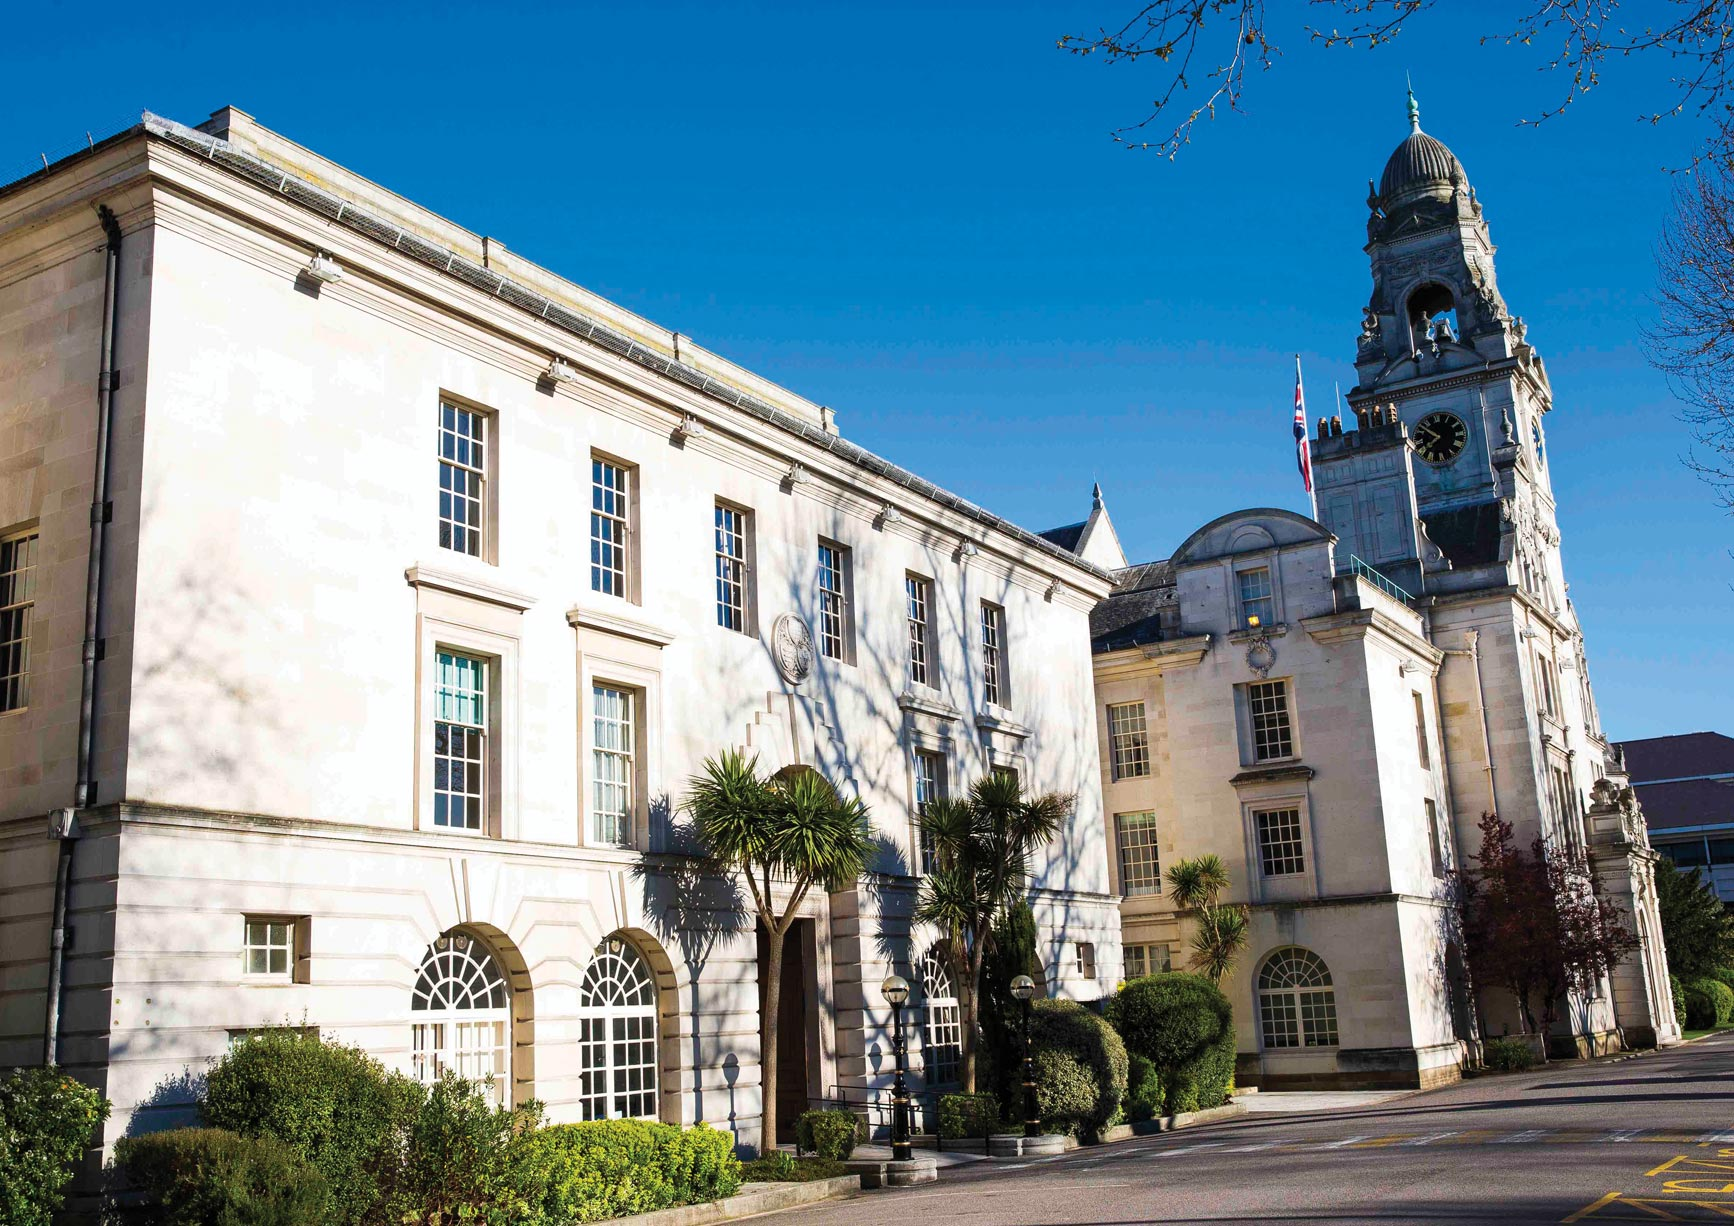 Surrey county councils saves 20% costs with custodian saas